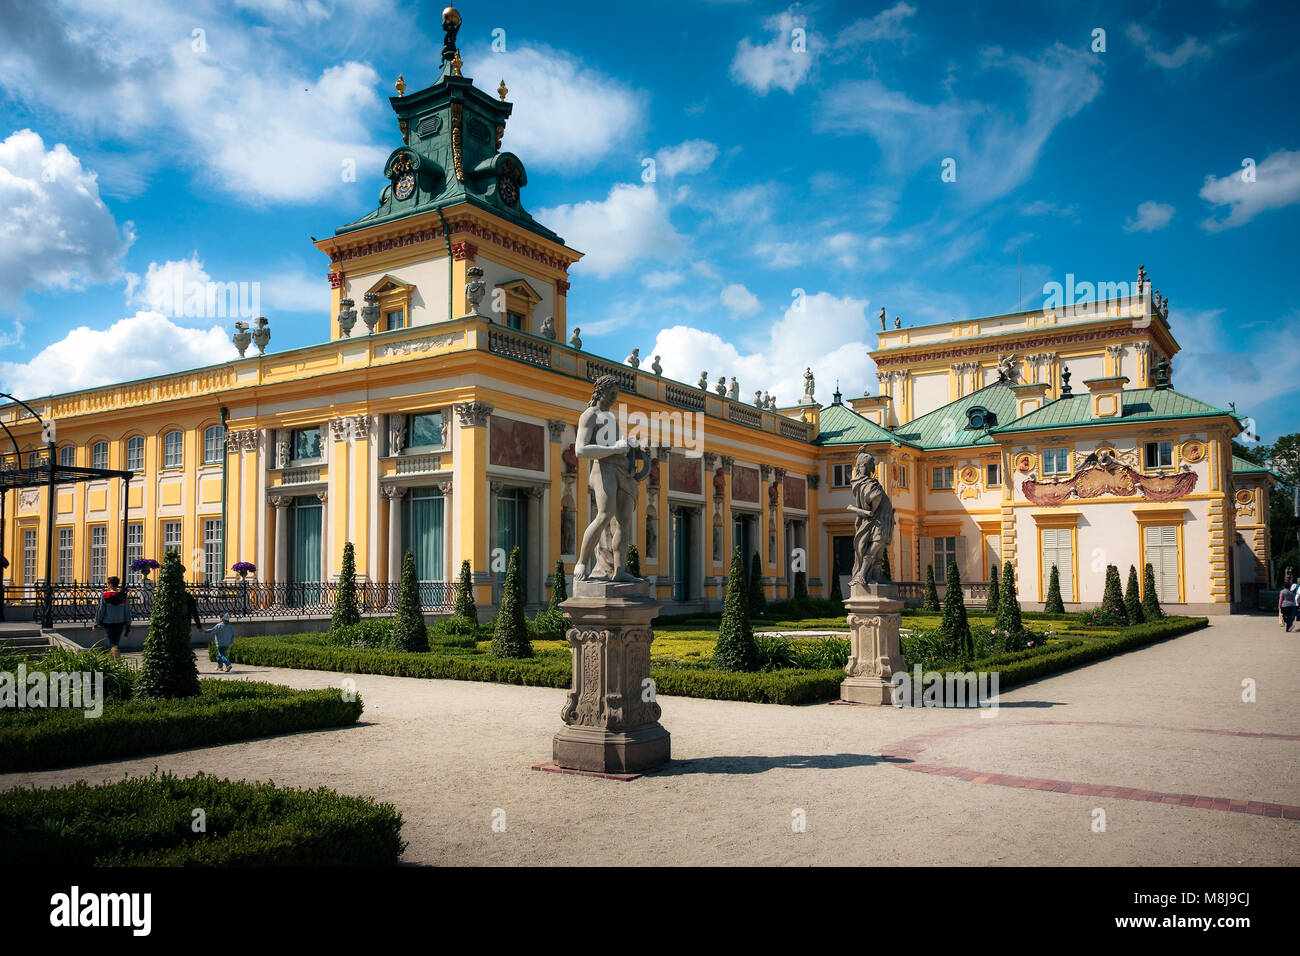 WARSAW, POLAND - JUNE 21, 2015: Wilanow Royal Palace gardens and ancient statues Stock Photo